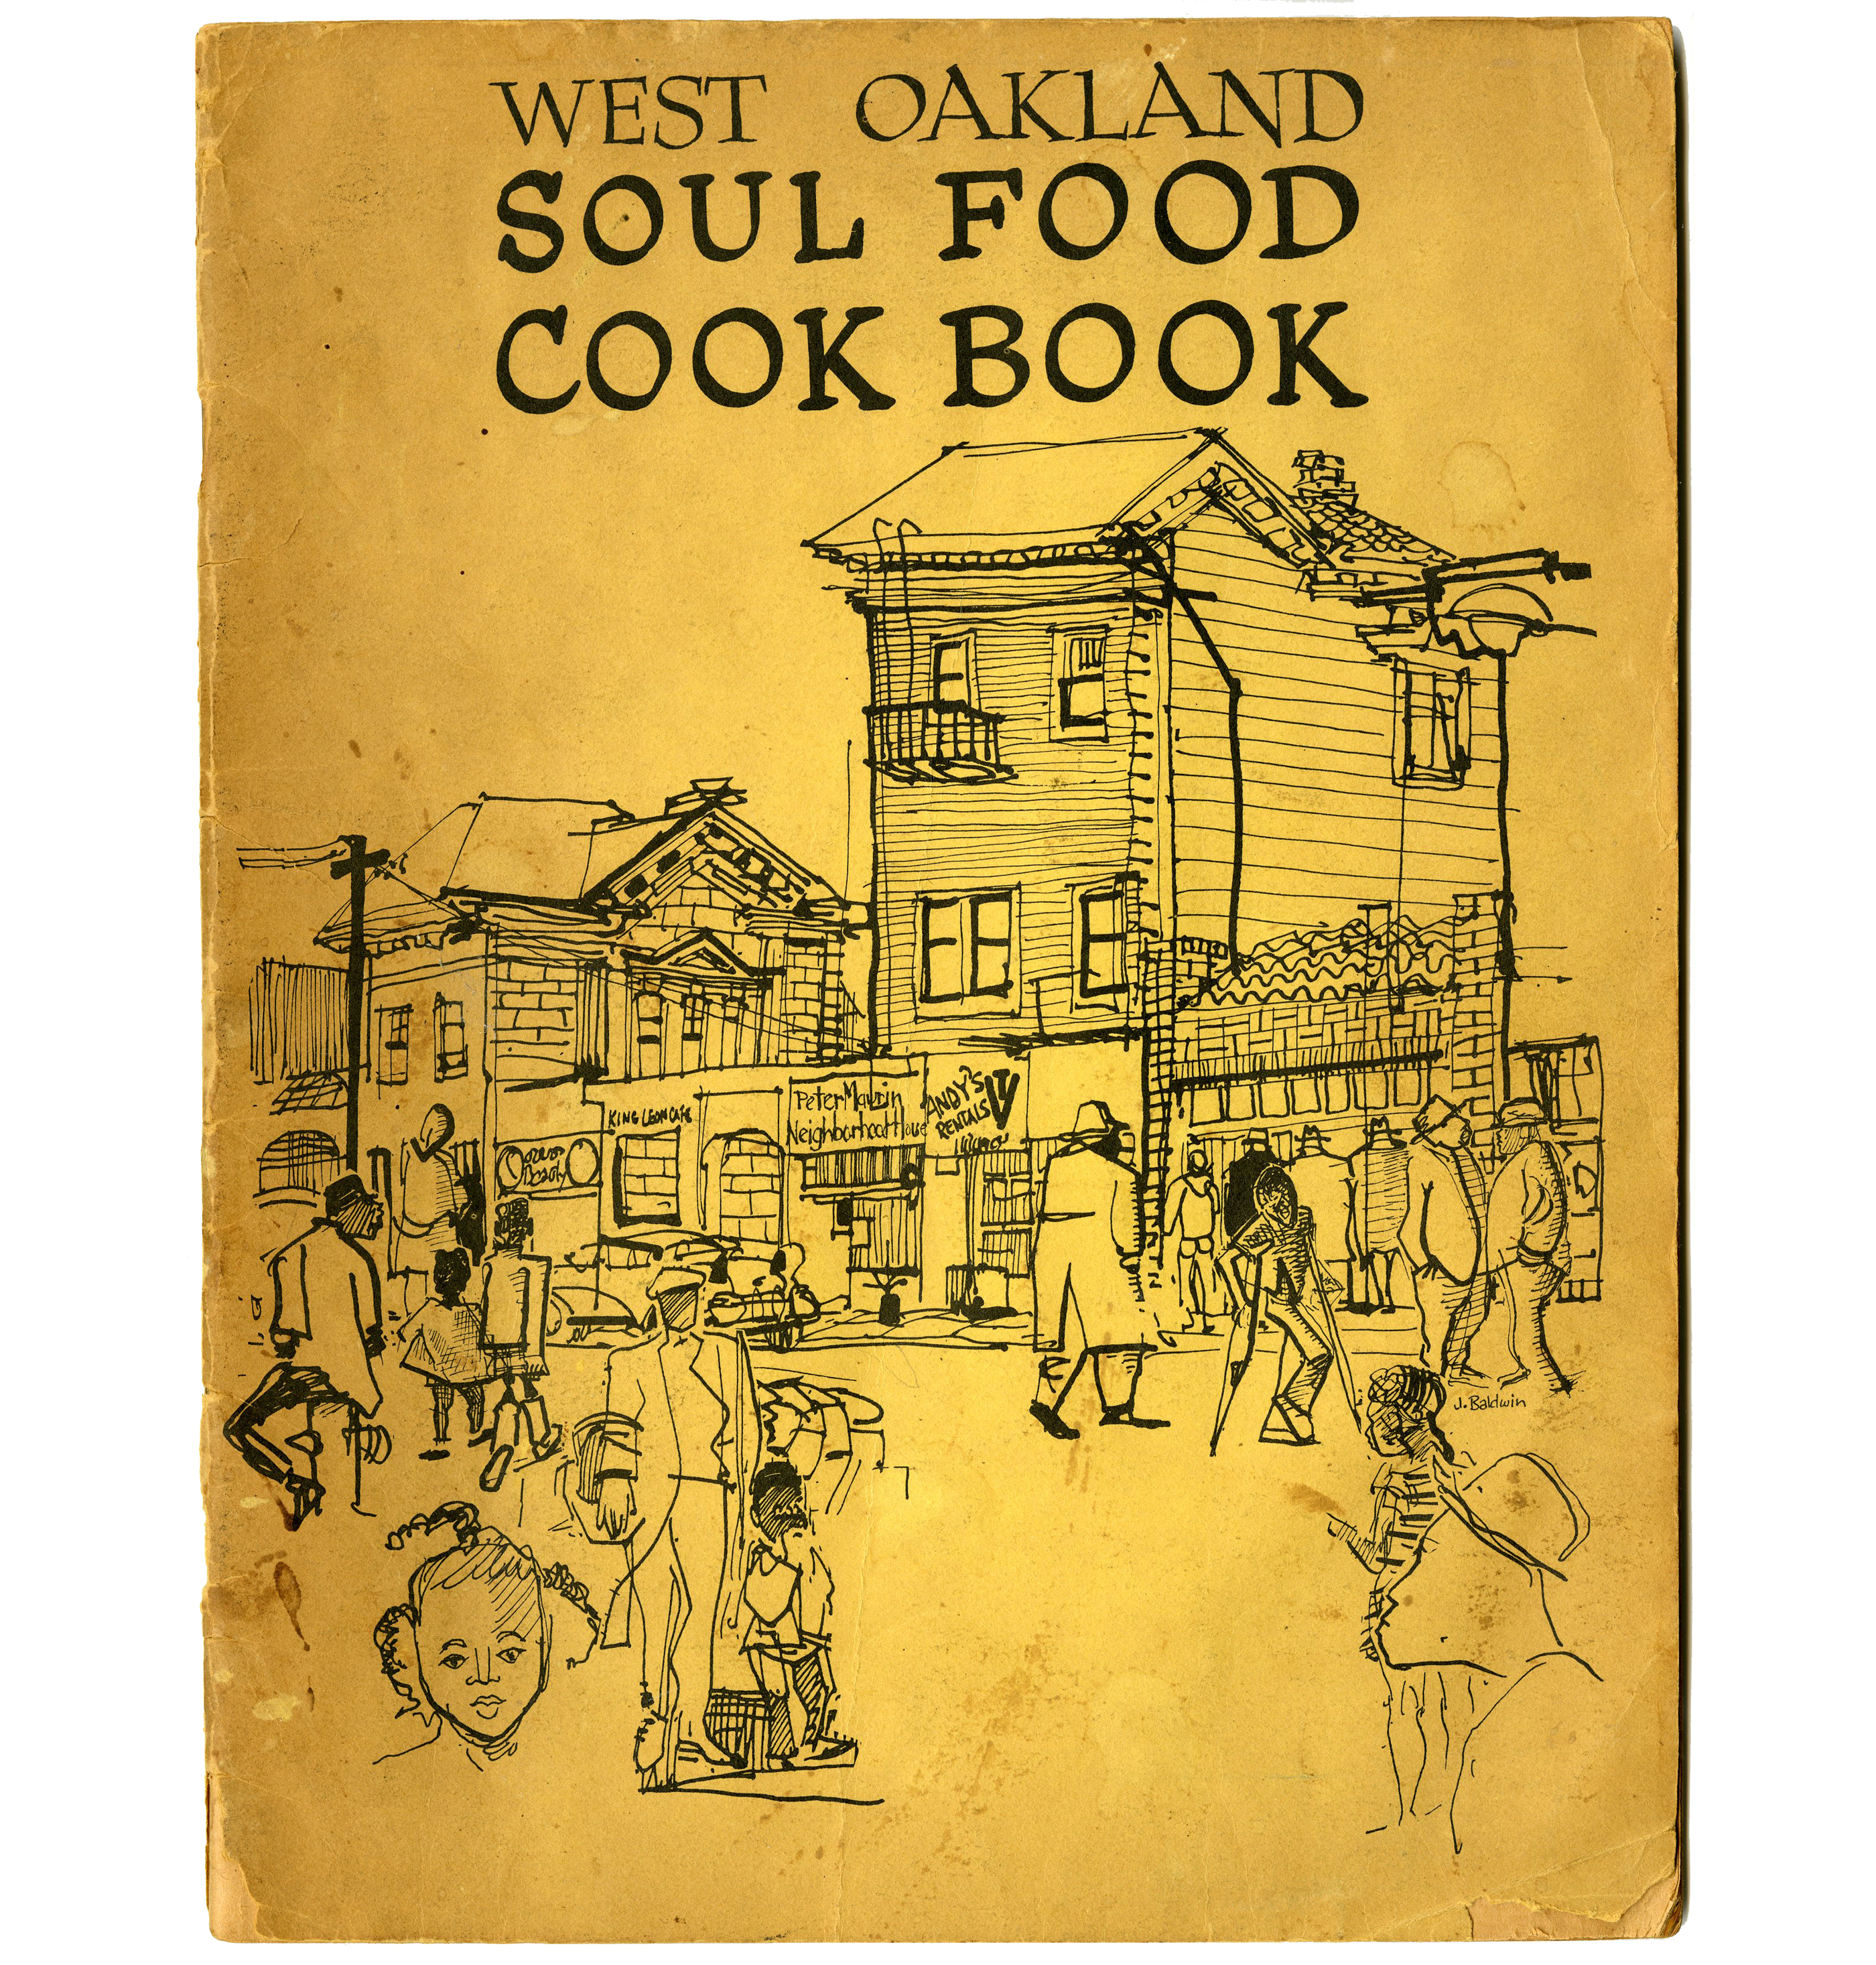 West oakland soul food cookbook special collections f w olin files forumfinder Choice Image